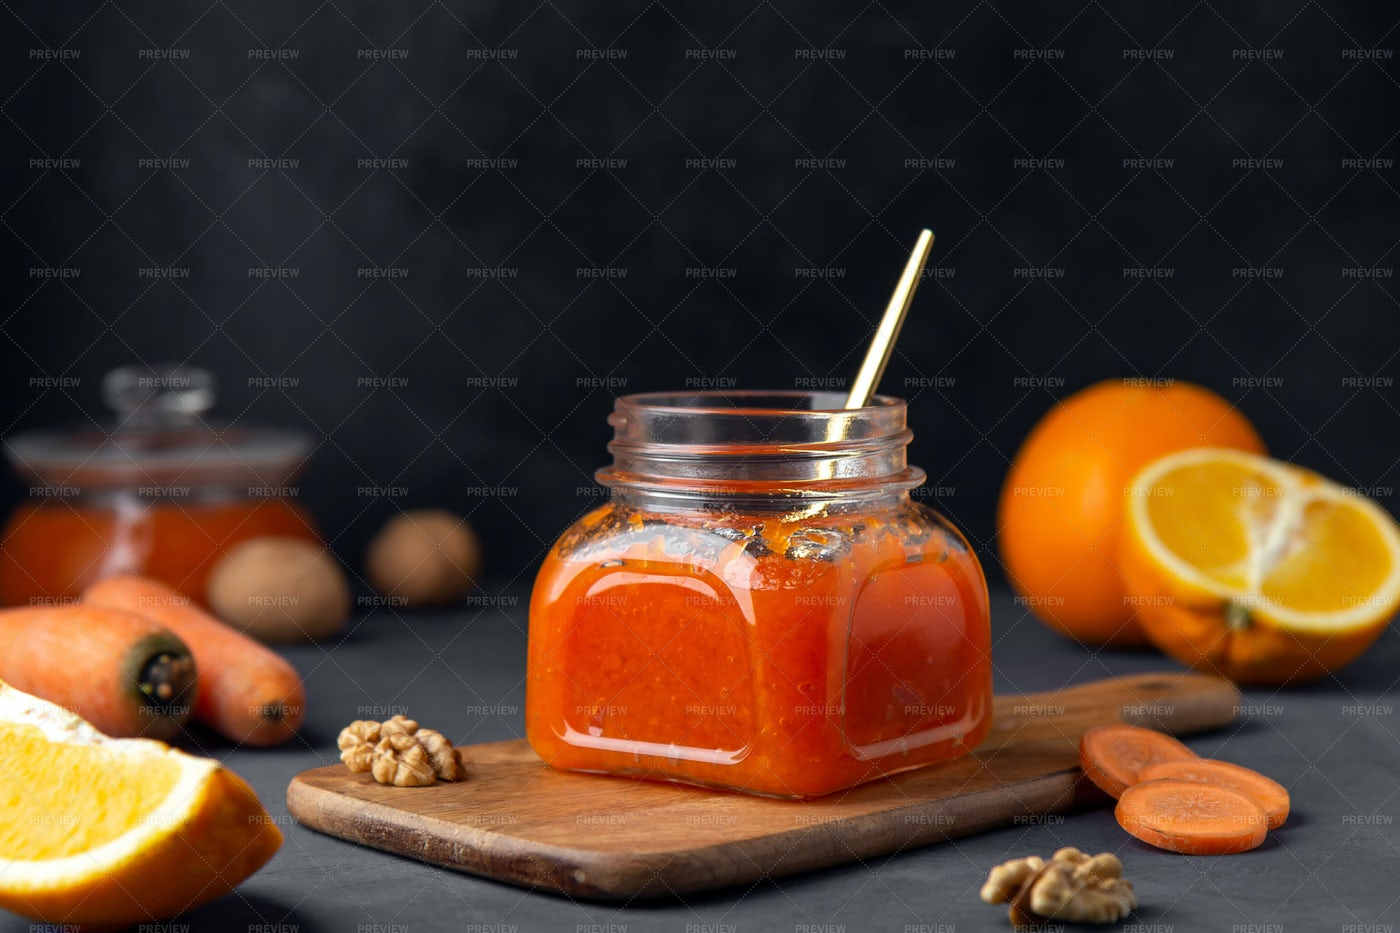 Glass Jar Of Carrot Jam: Stock Photos